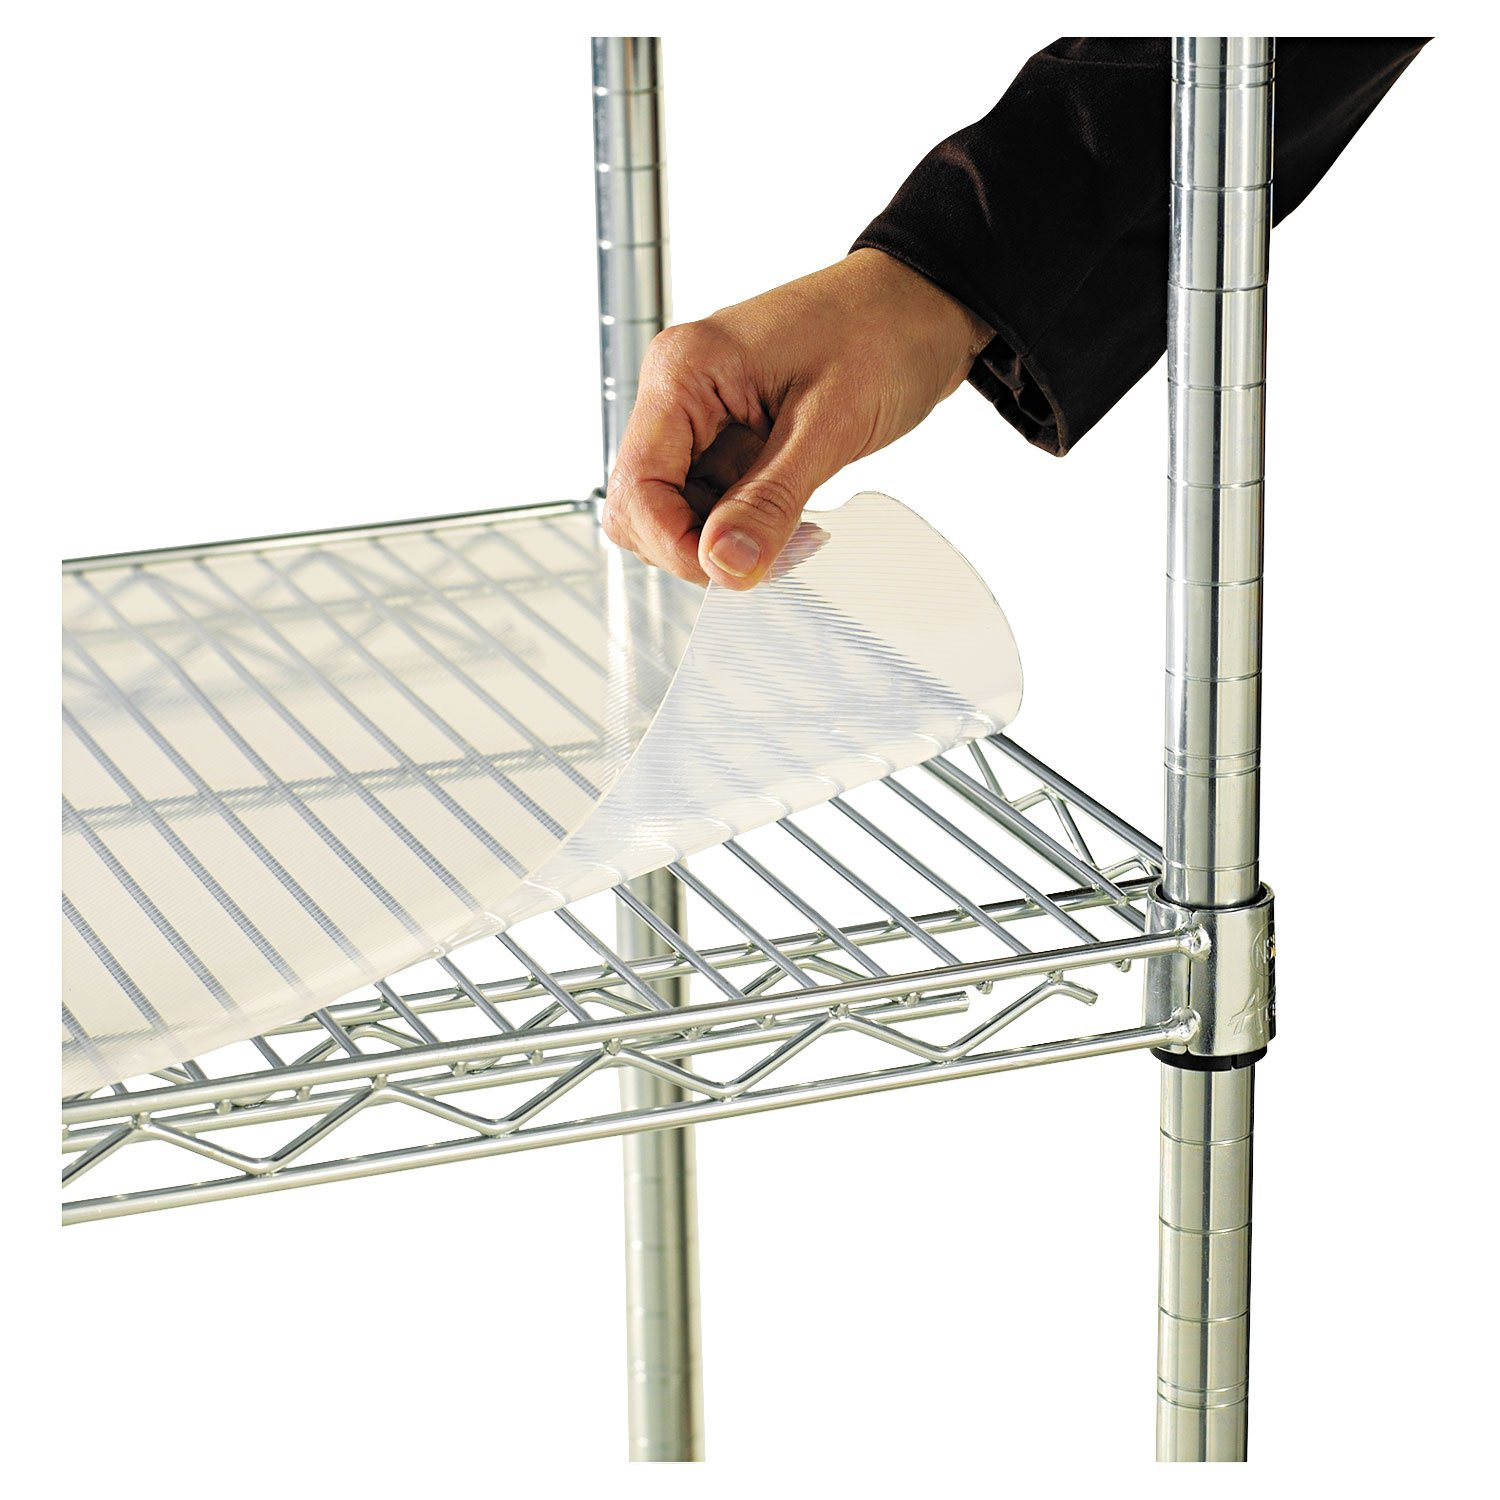 ALESW59SL3618 - Shelf Liners for Wire Shelving